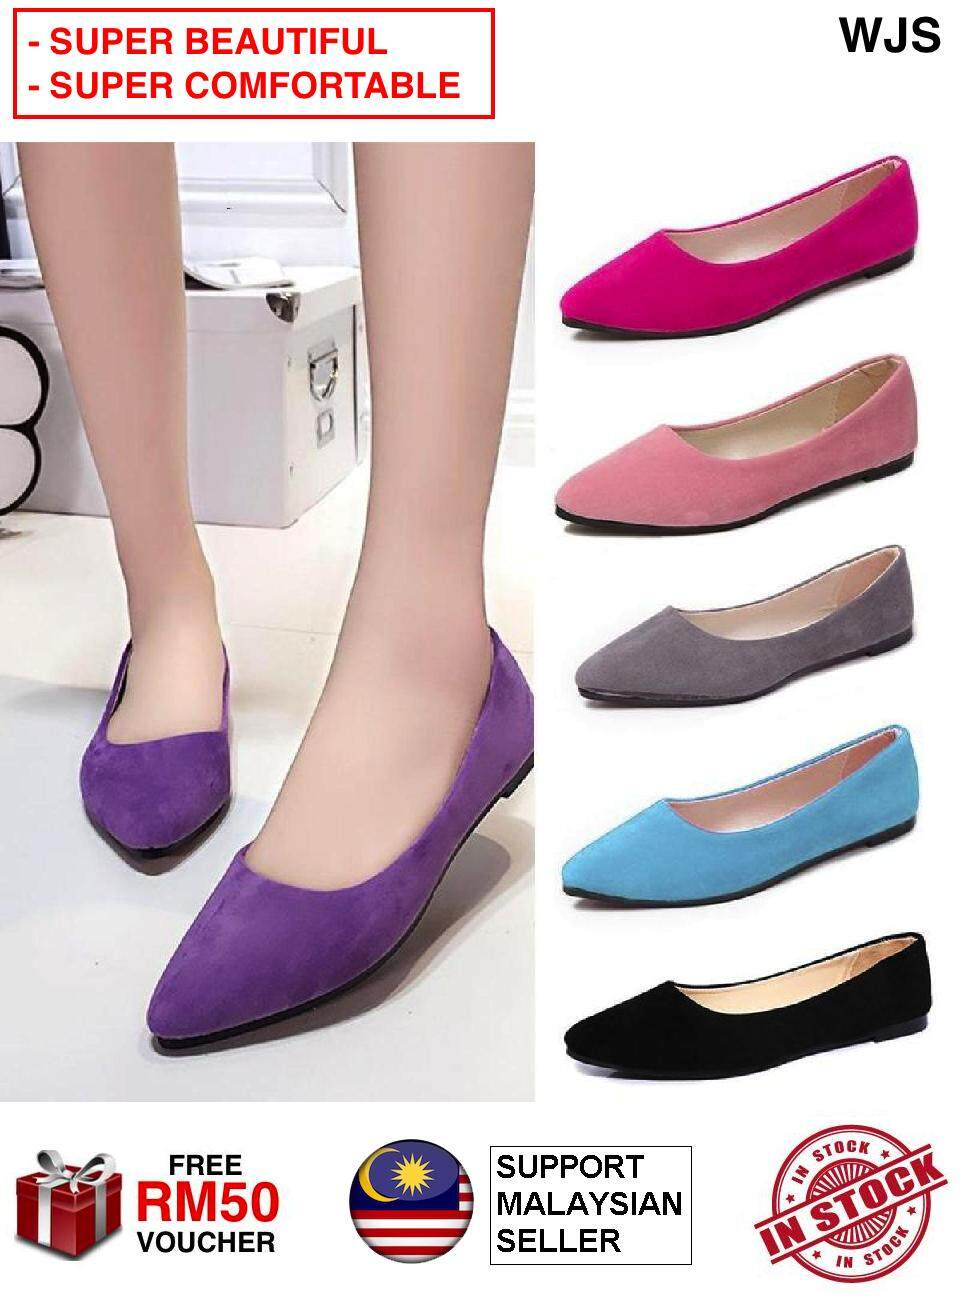 (SUPER COMFORTABLE & FASHIONABLE) WJS Women Casual Flat Shoes Women Shoes Pointed Shoes Comfort Flats Loaders Office Shoe Office Slipons Slip Ons Heels Fashion Shoe Work Kasut Perempuan MULTICOLOR [FREE RM 50 VOUCHER]